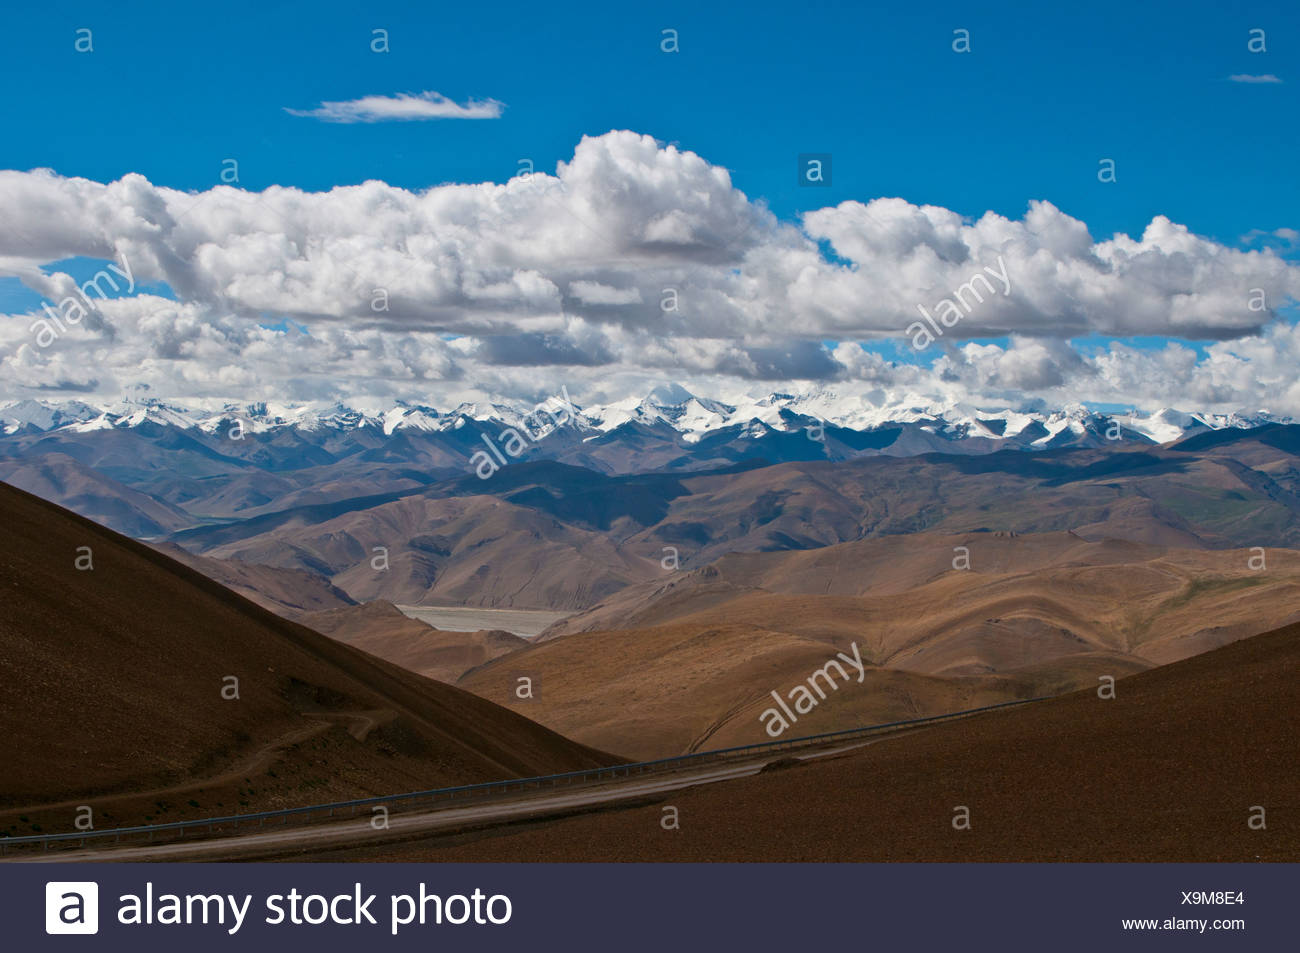 View of Mount Everest and the Himalayas, Tibet, Asia - Stock Image